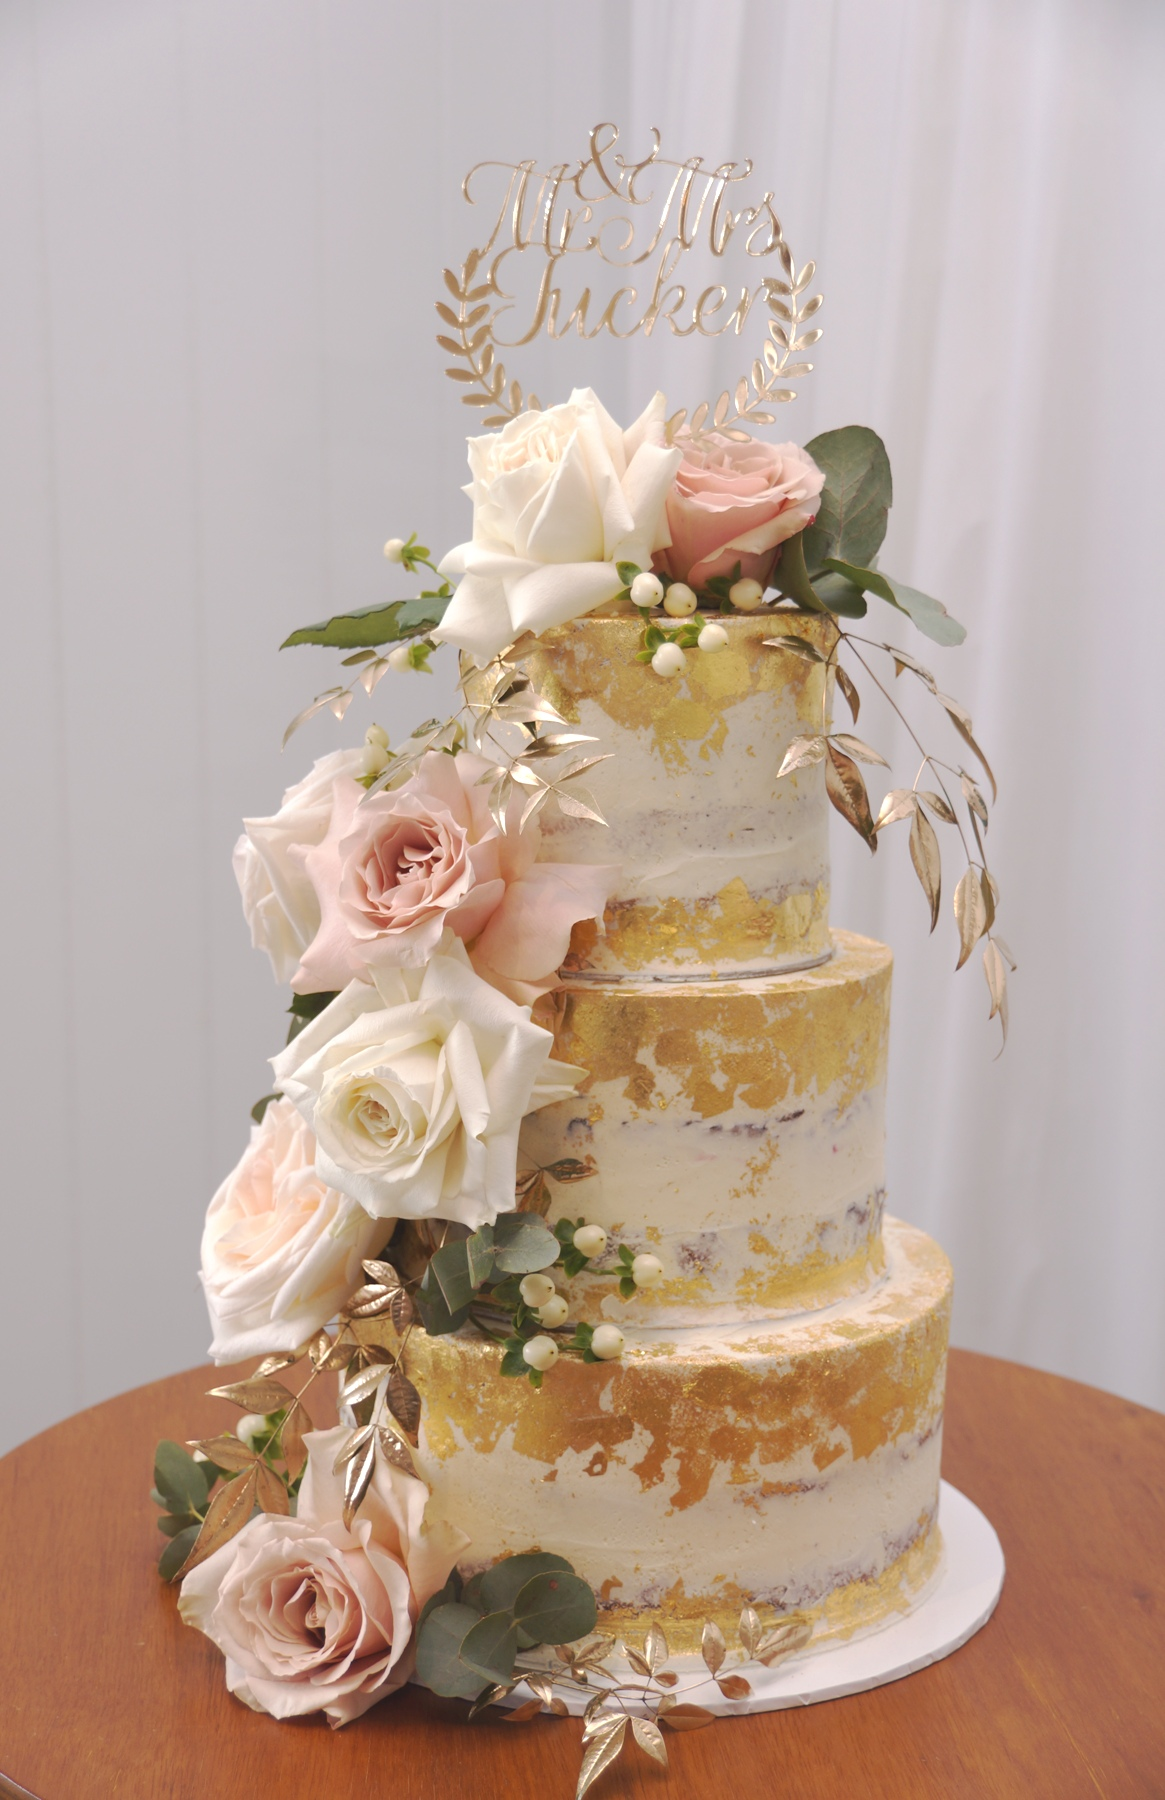 3 Tier Semi Naked with gold leaf and Fre